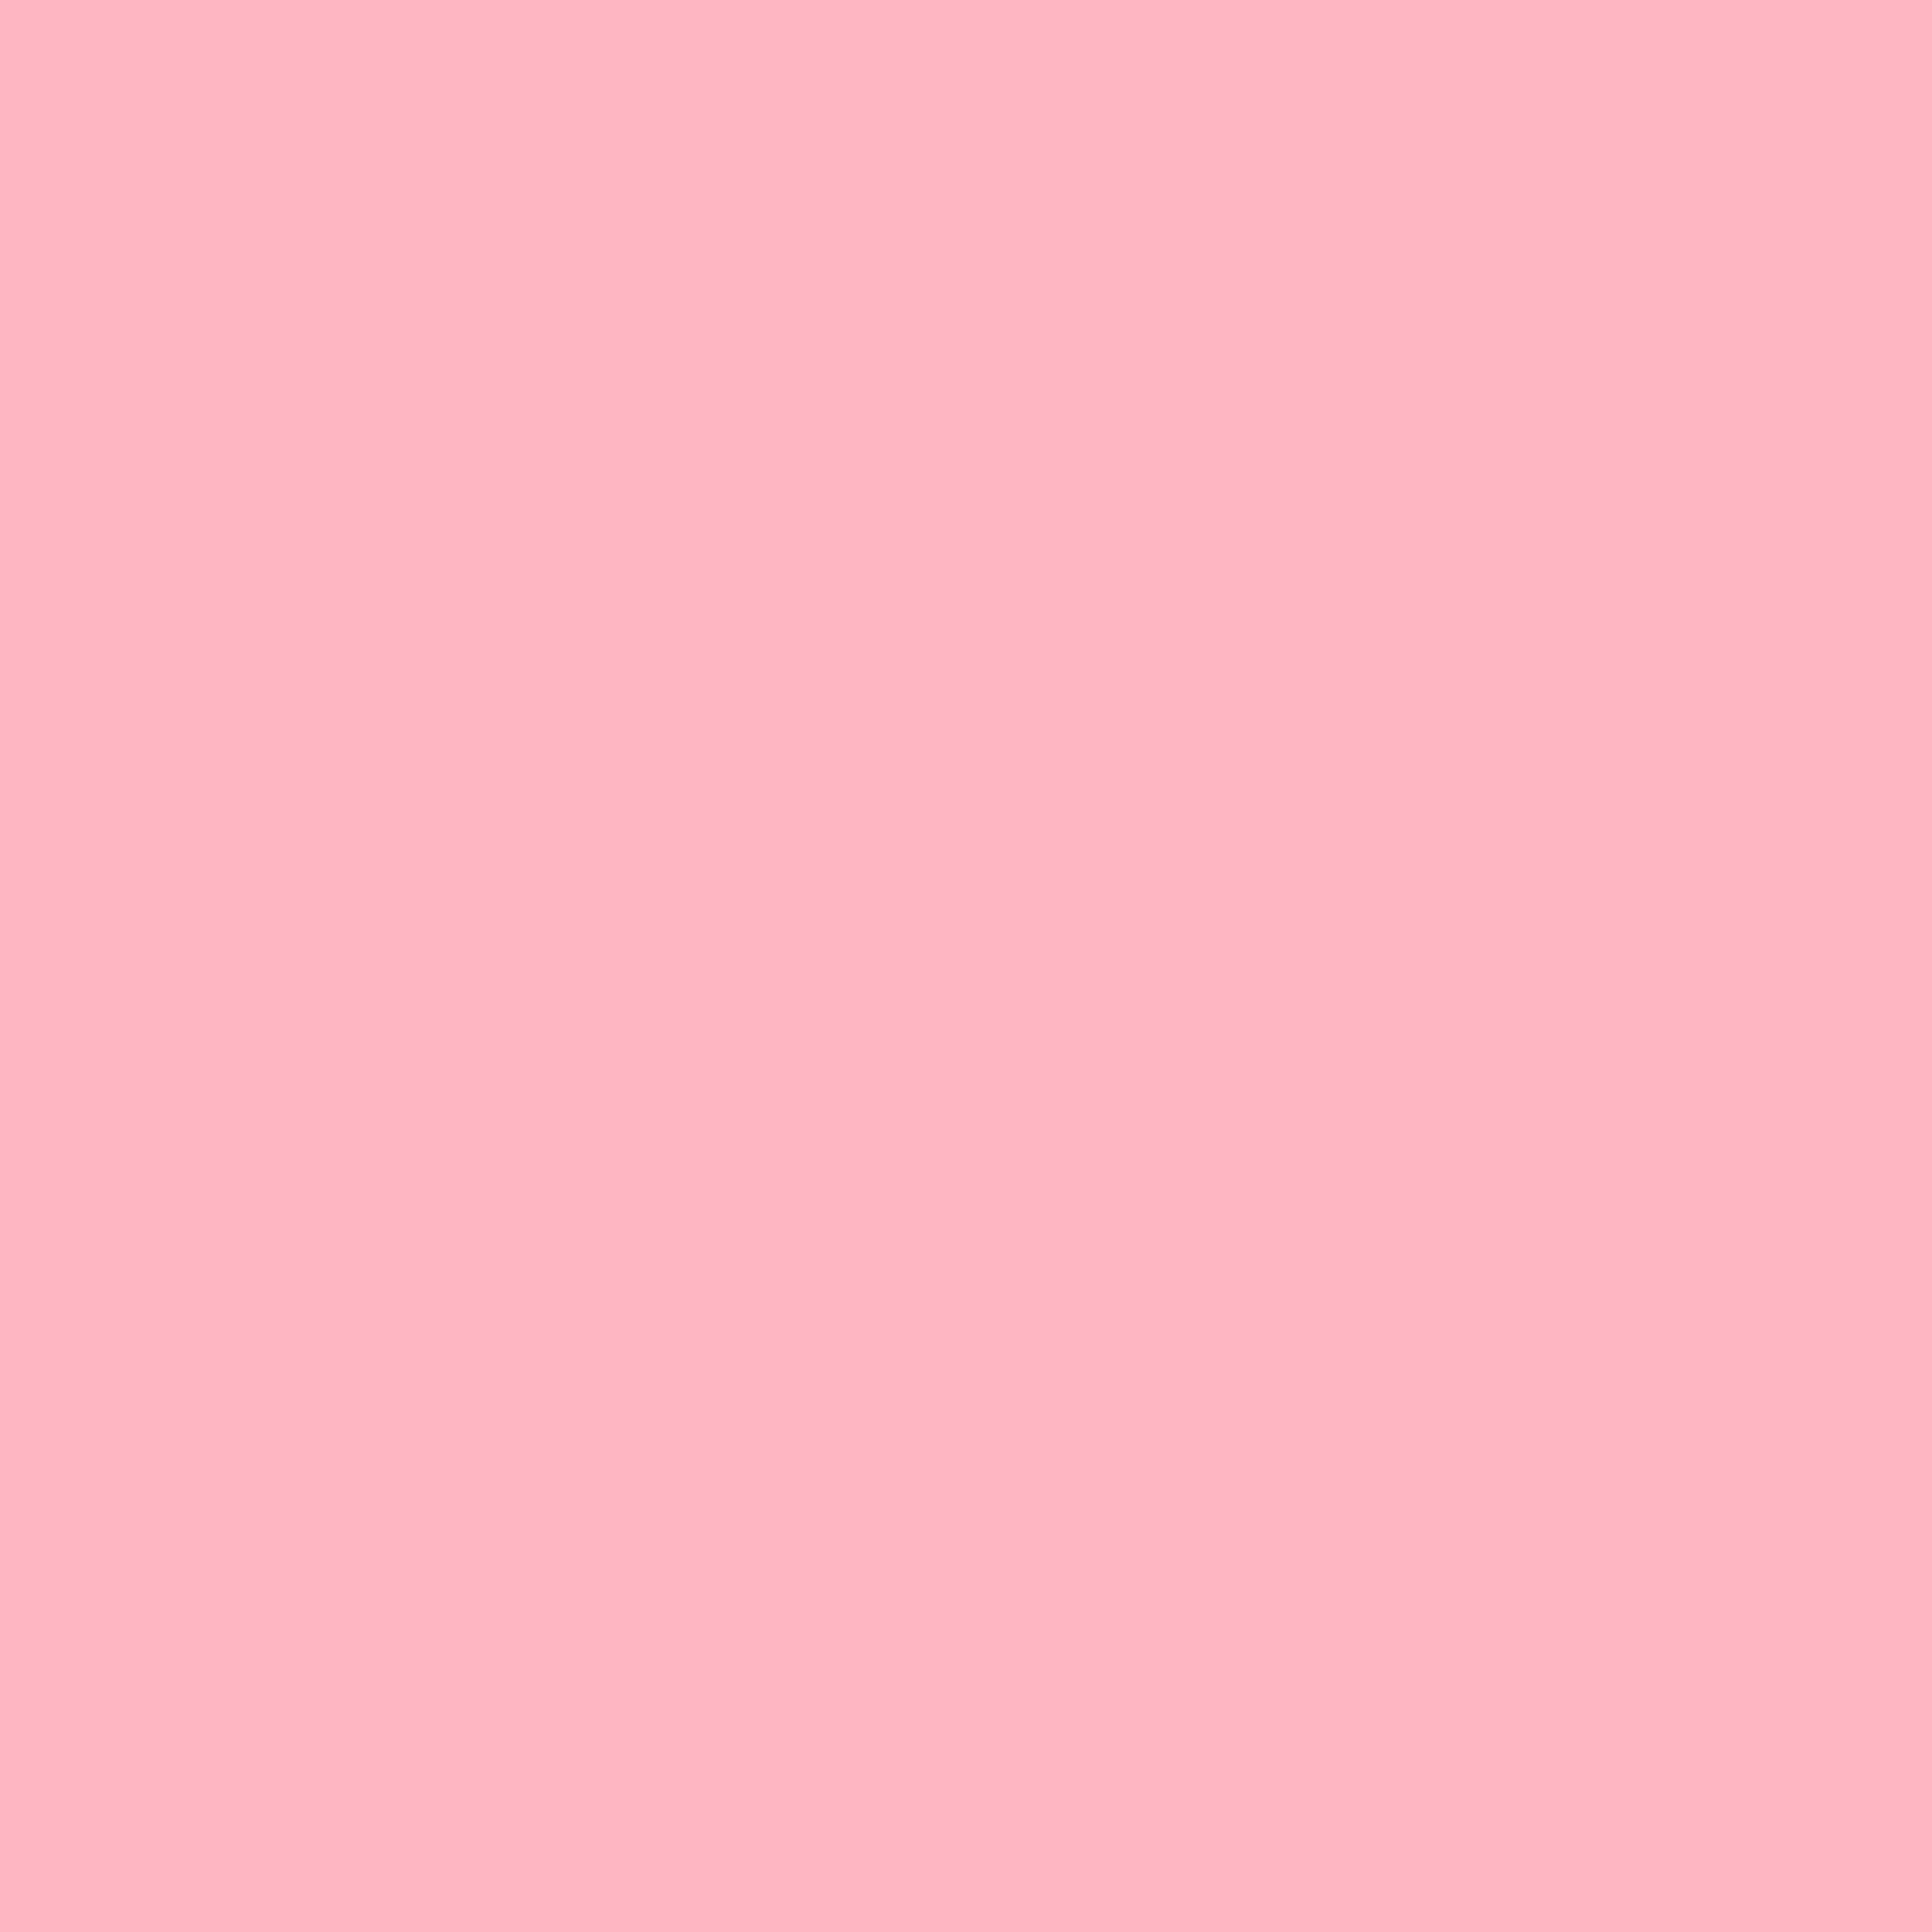 Image Gallery light pink solid background